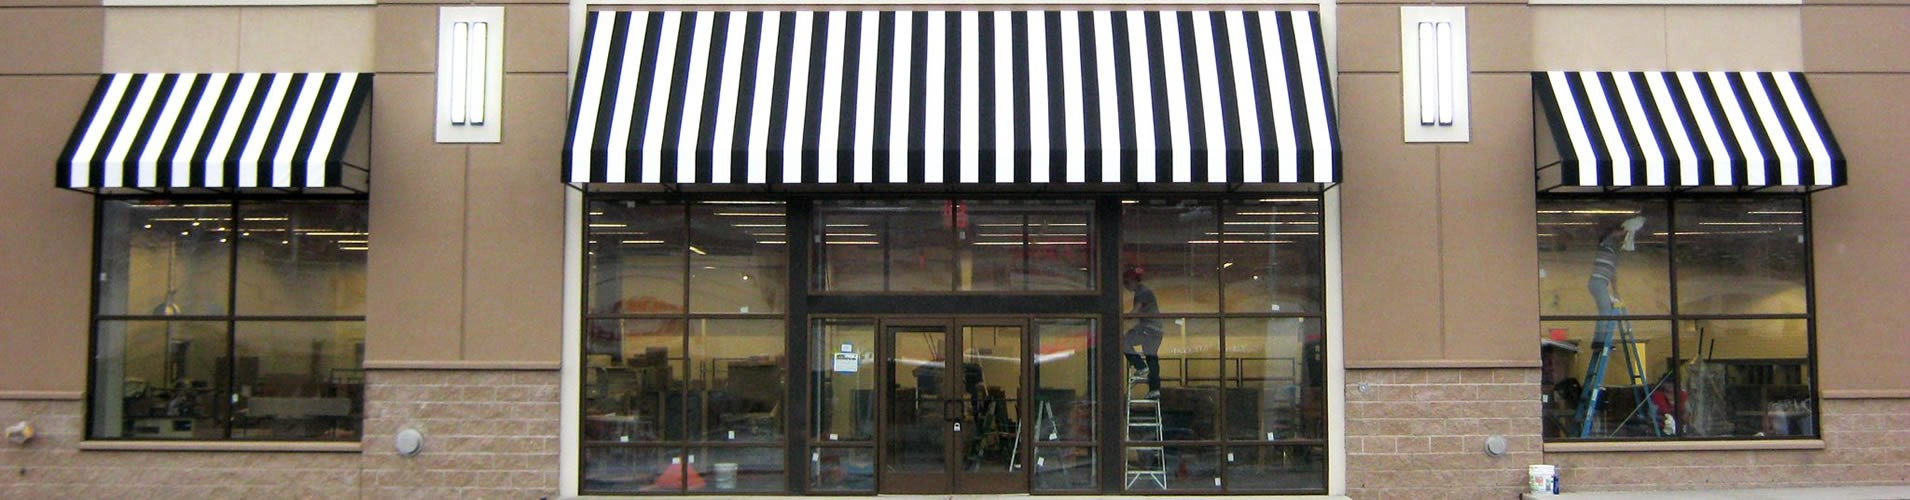 Palm Beach awnings for business buildings